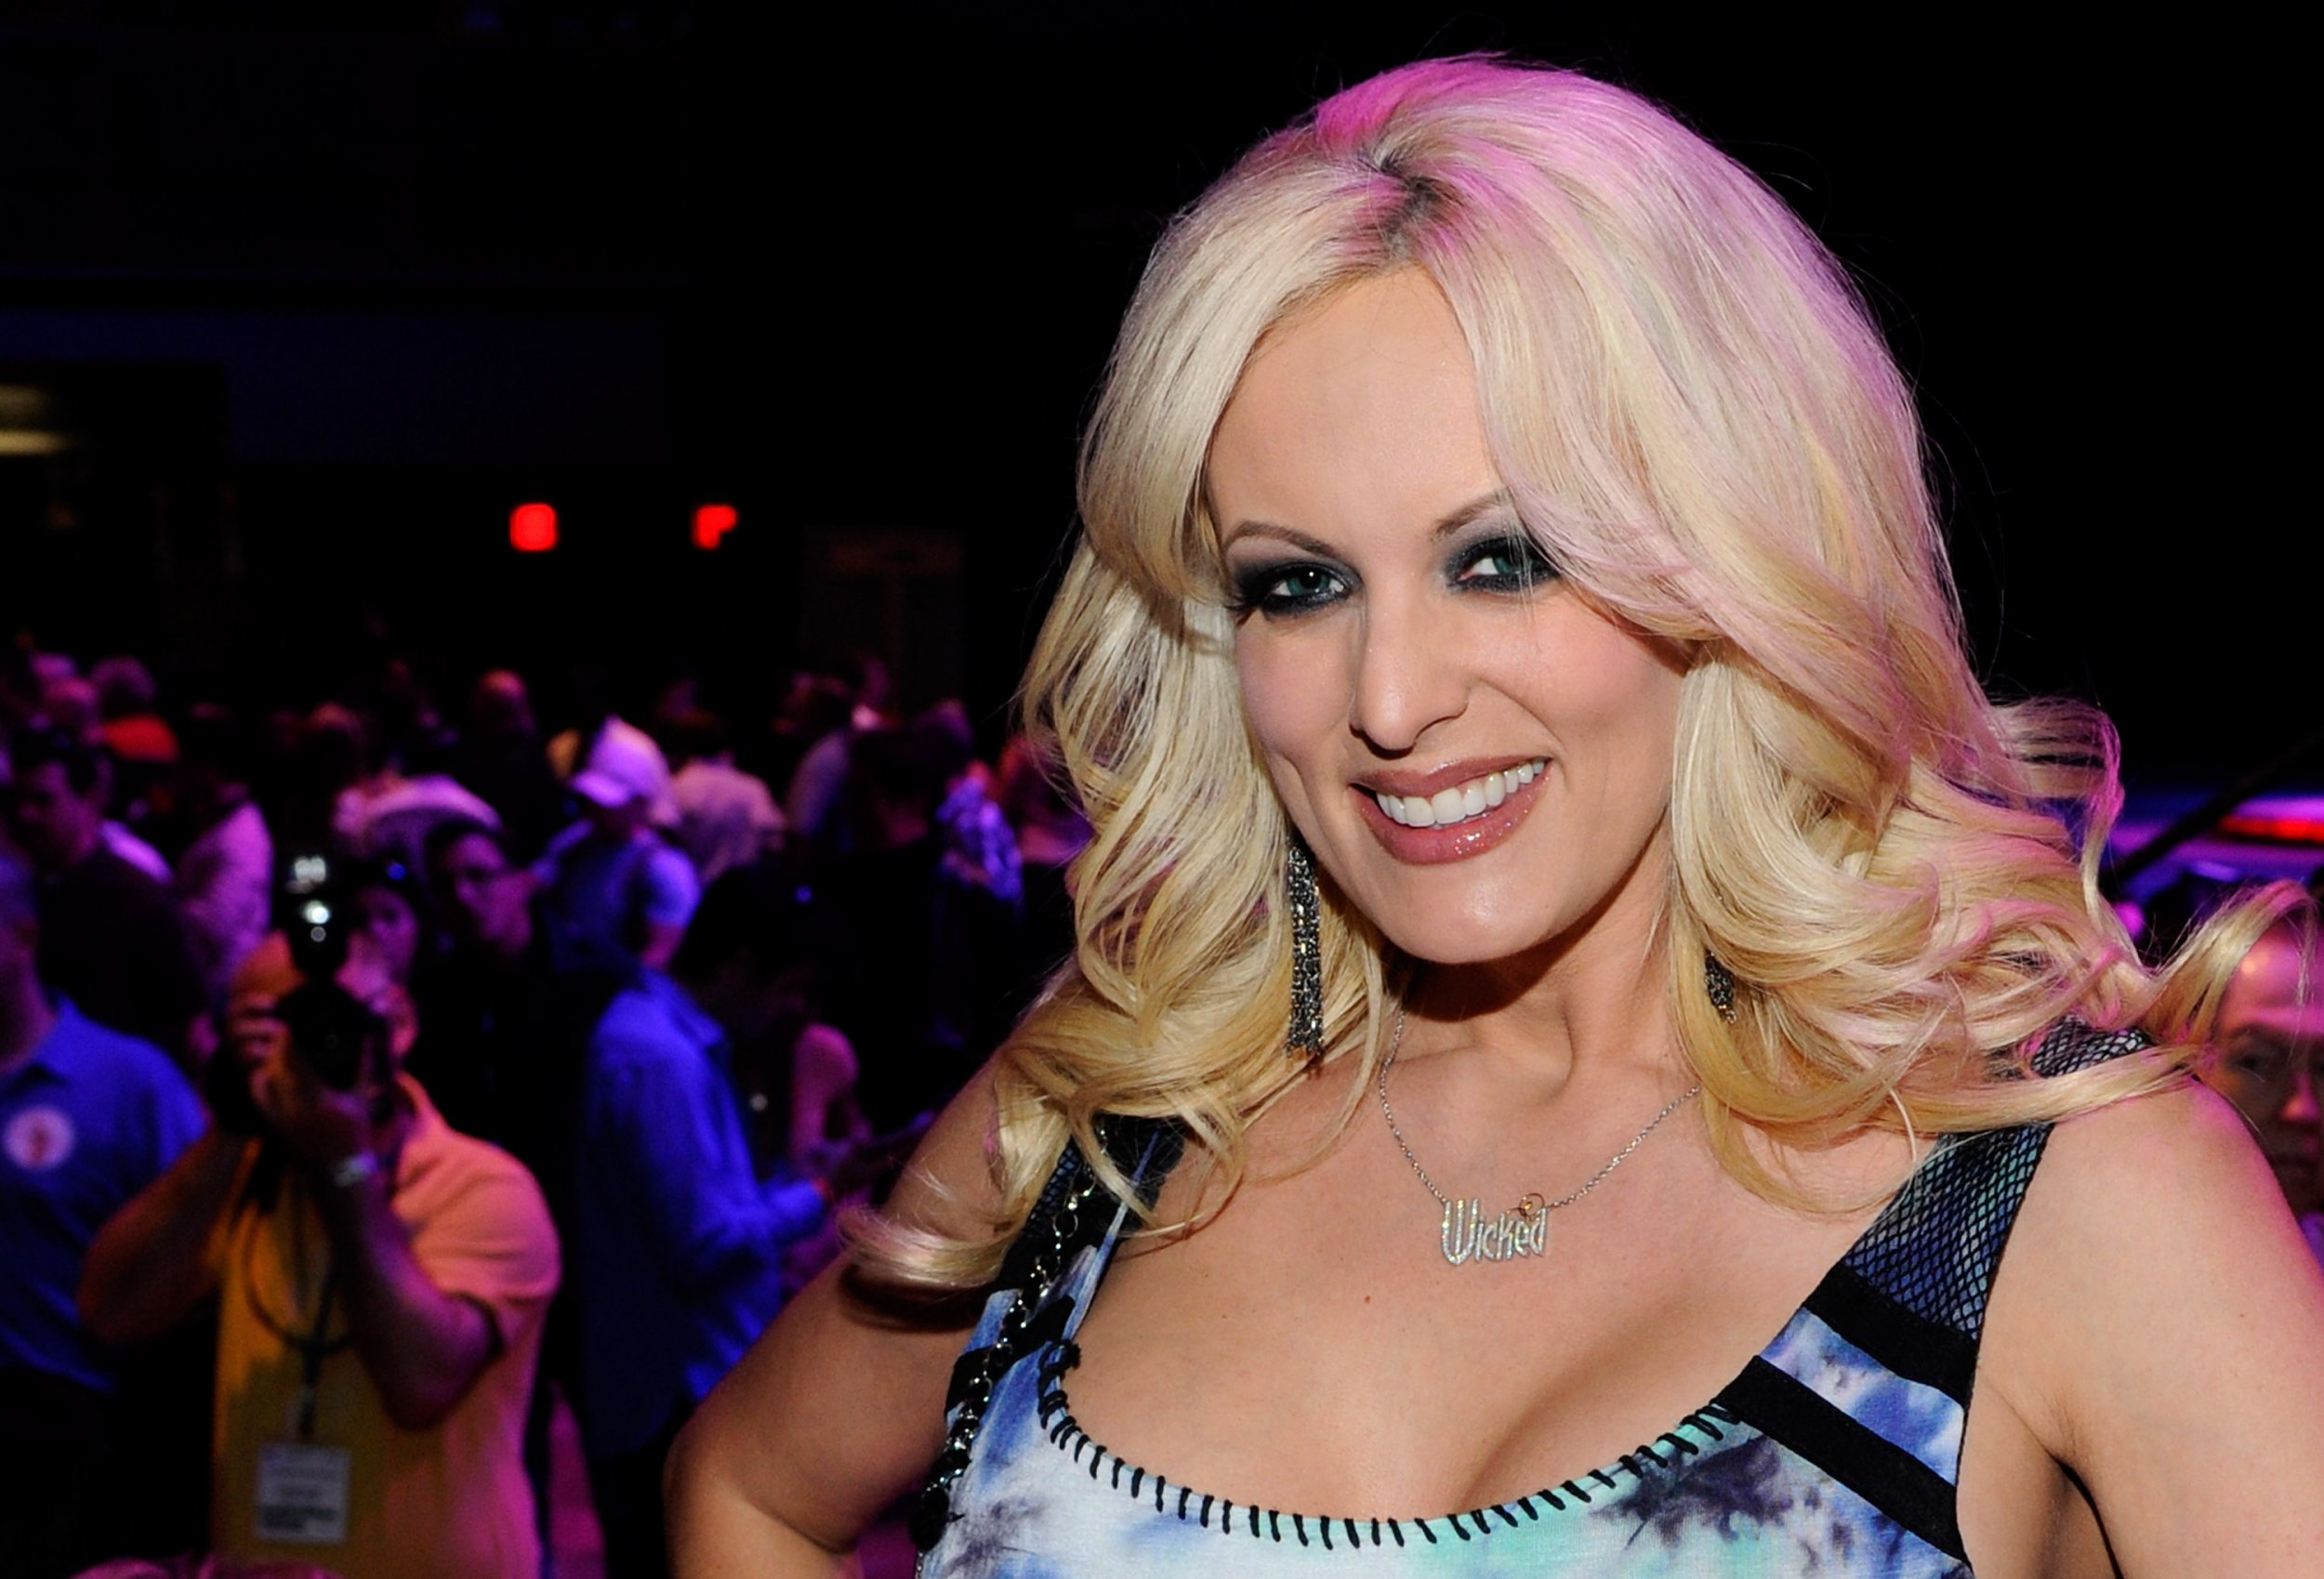 Forum on this topic: Marie Ange Casta Nude Photos and Videos, stormy-daniels-striptease/